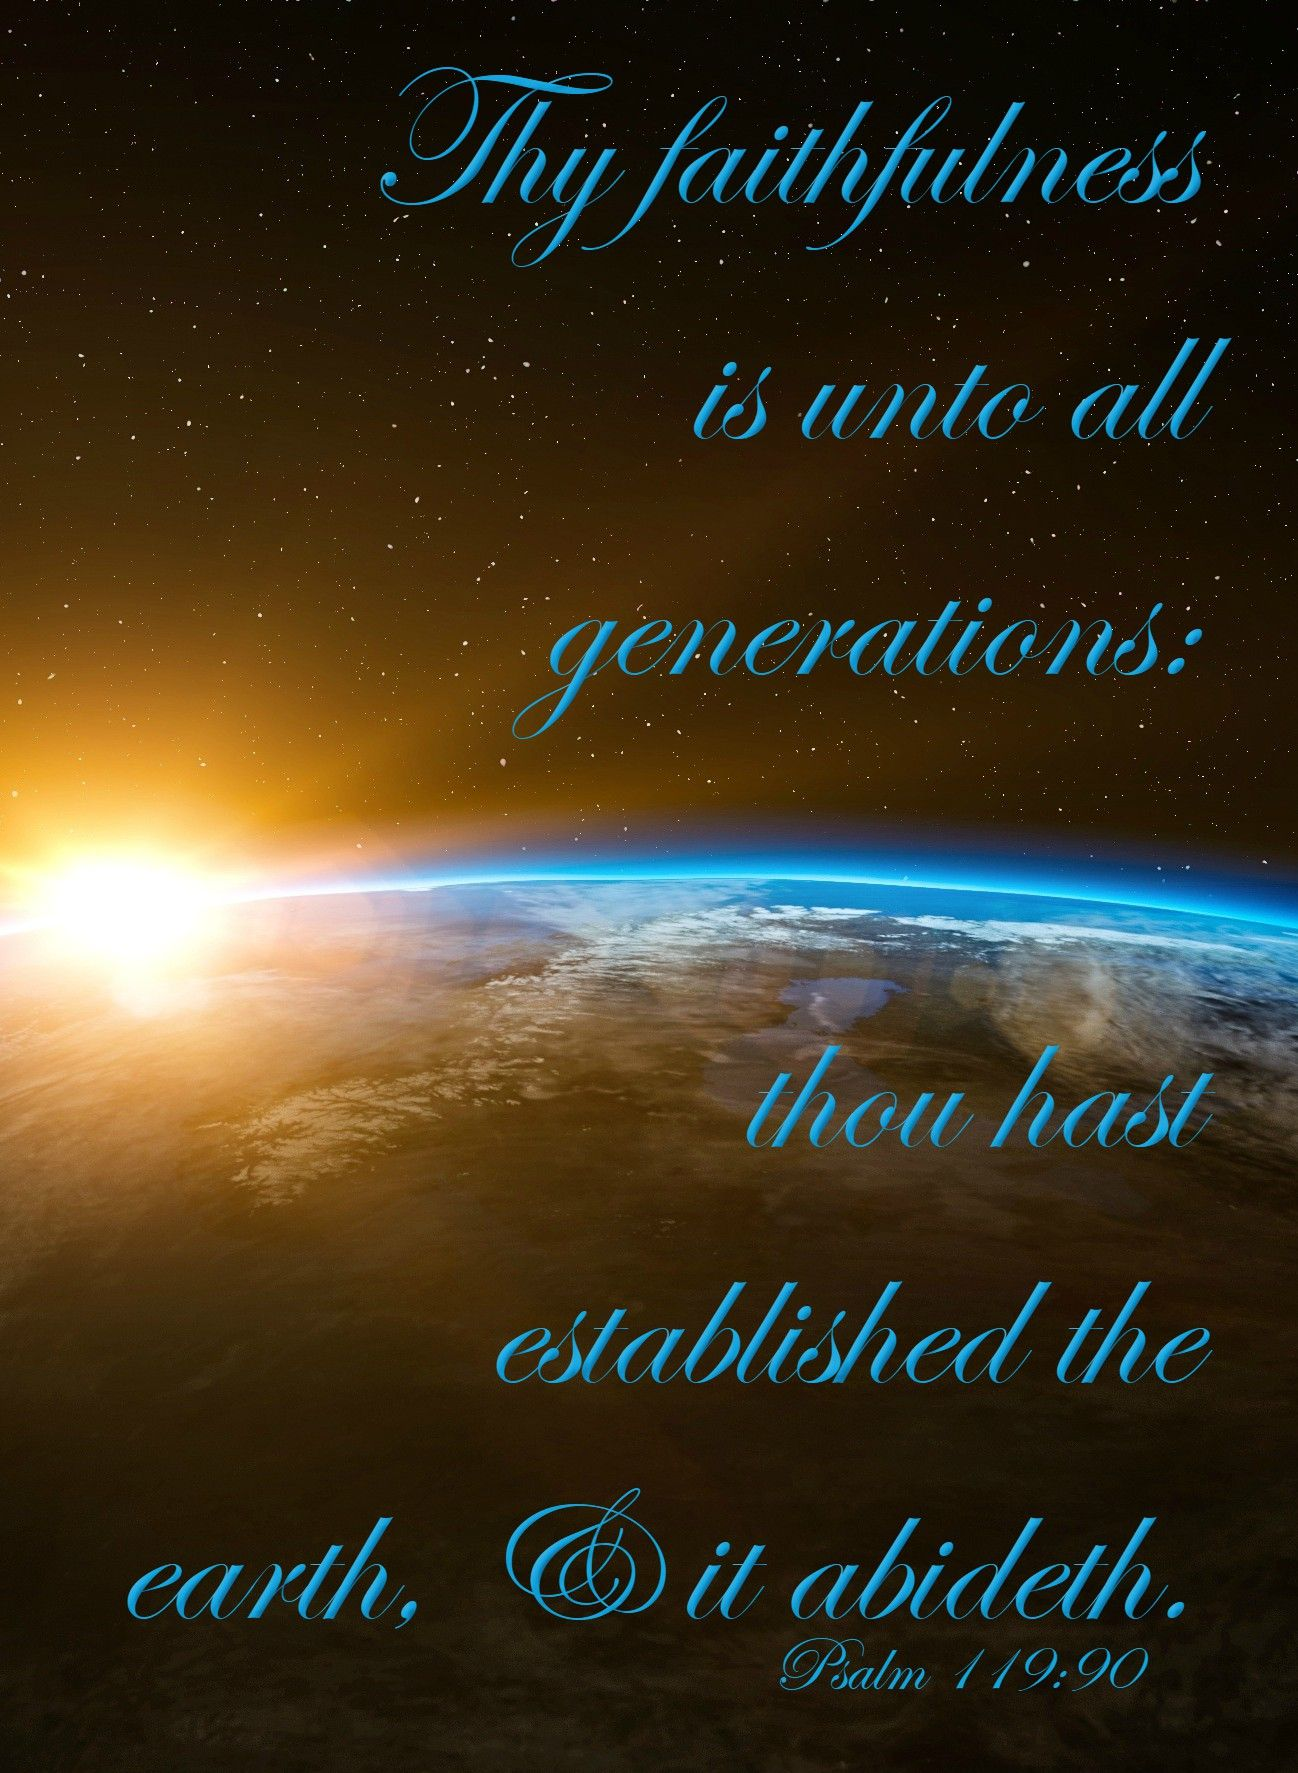 Psalm 119:90 (KJV) Thy faithfulness is unto all generations: thou hast  established the earth, and it abideth. | Psalm 119, Bible scriptures, Psalms